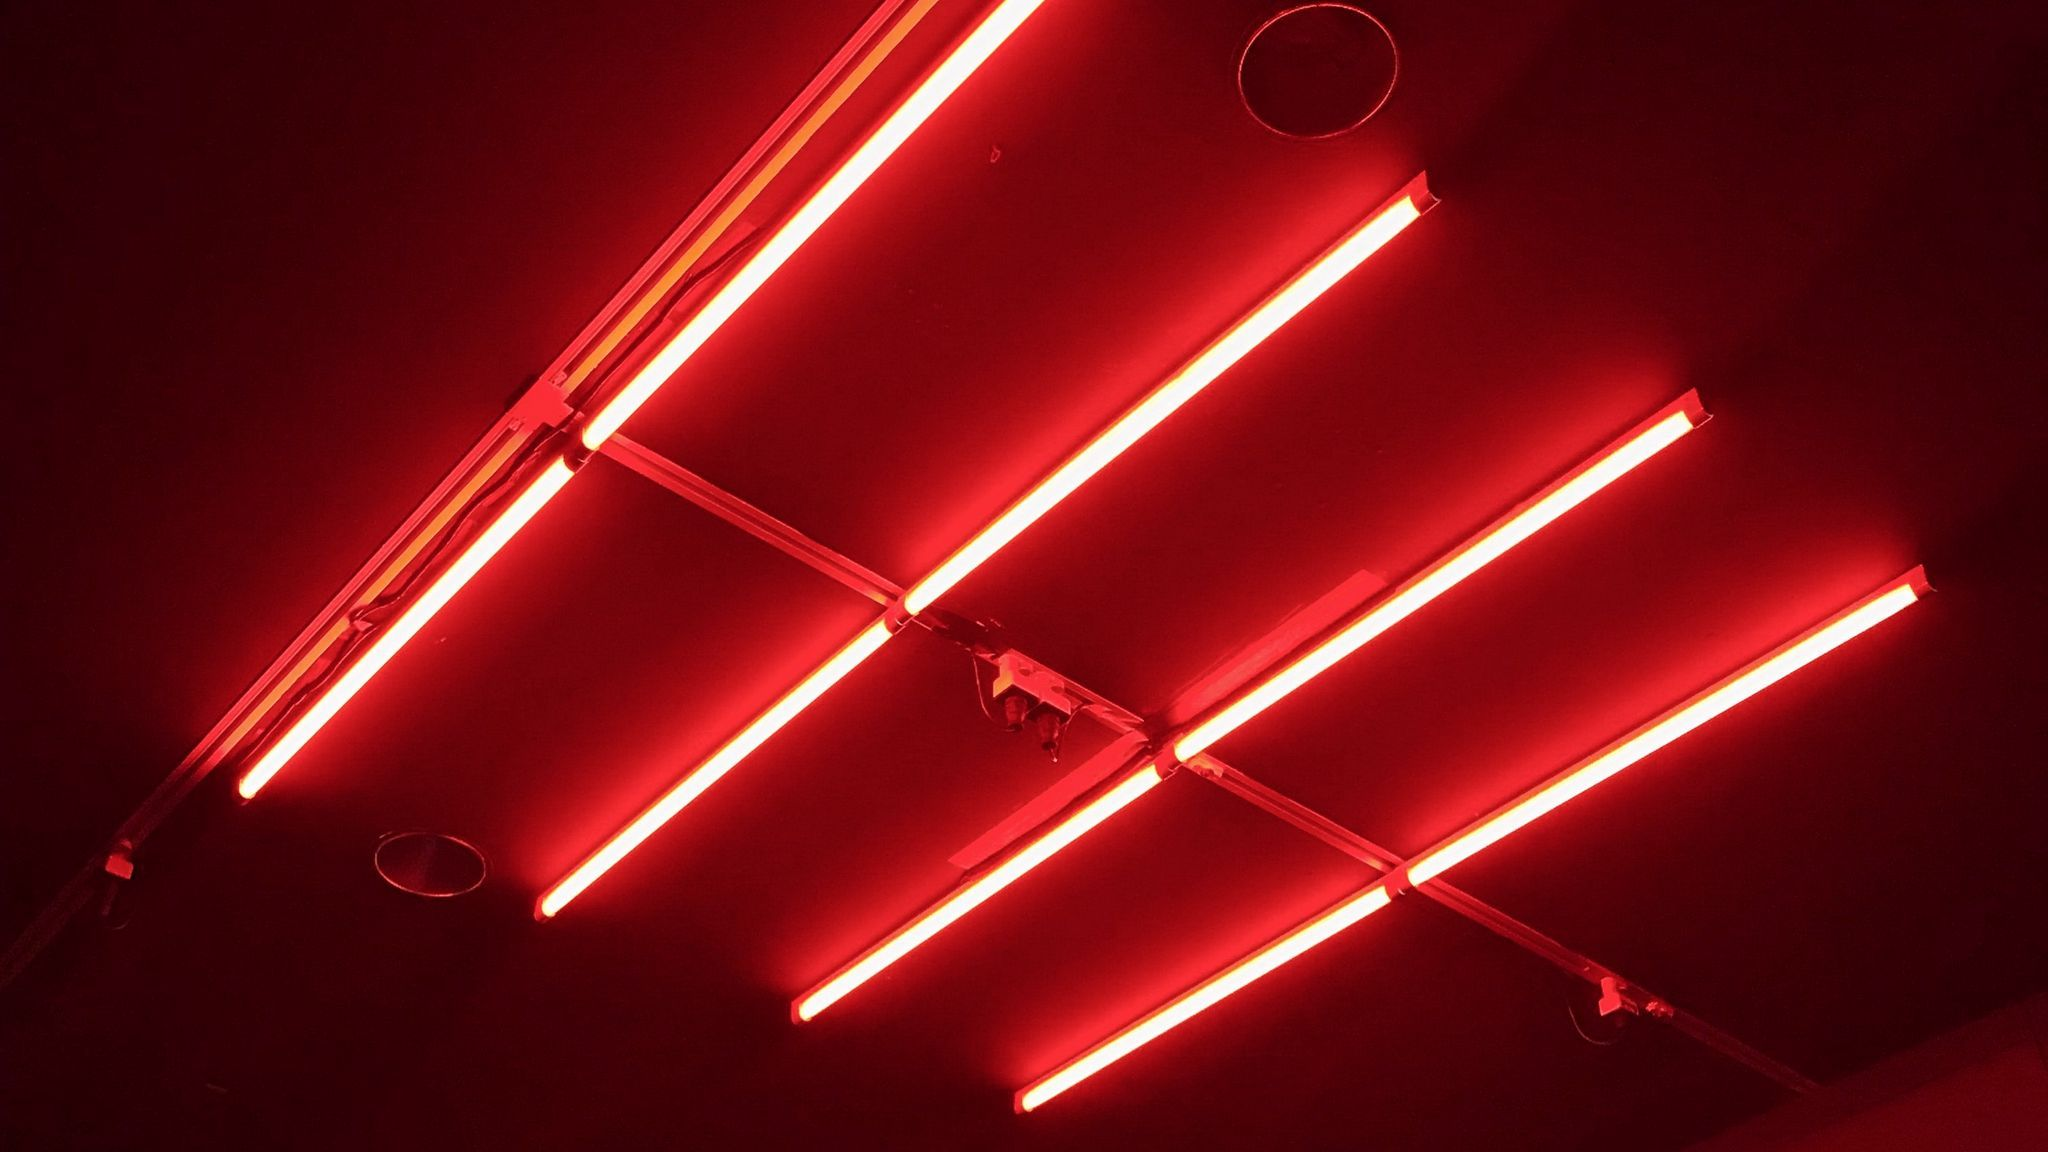 Red Neon wallpapers